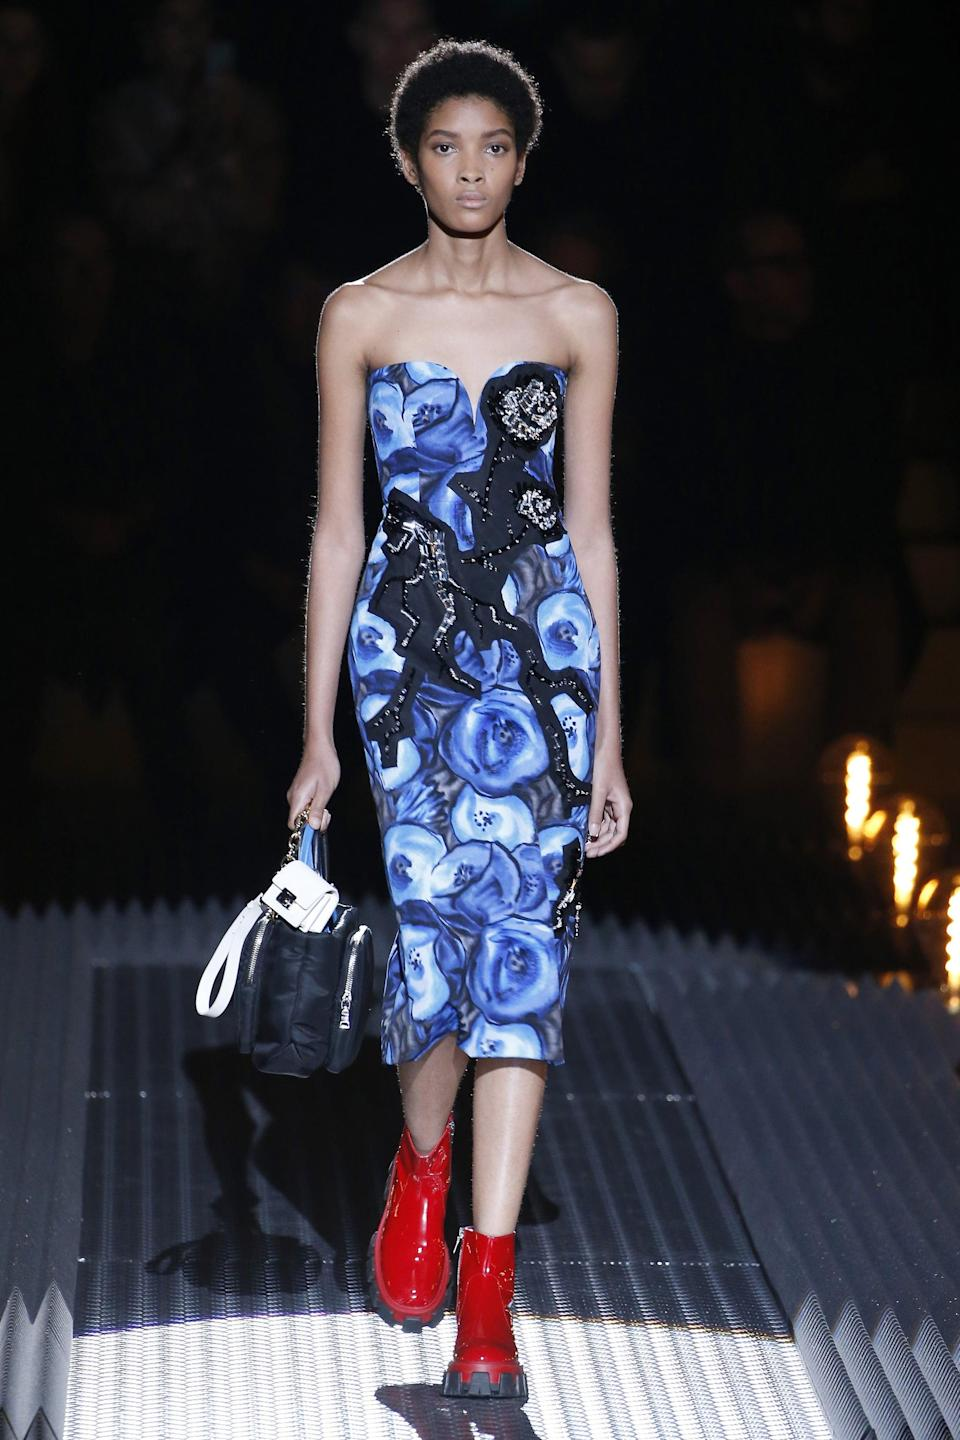 <p>In Fall of 2018, Licett Morillo Montero became the first woman of color to close a Prada show. Montero's androgynous and powerful look is what brought her from working in a plastics factory and studying in the Dominican Republic, to the catwalks of Valentino and Saint Laurent.</p>